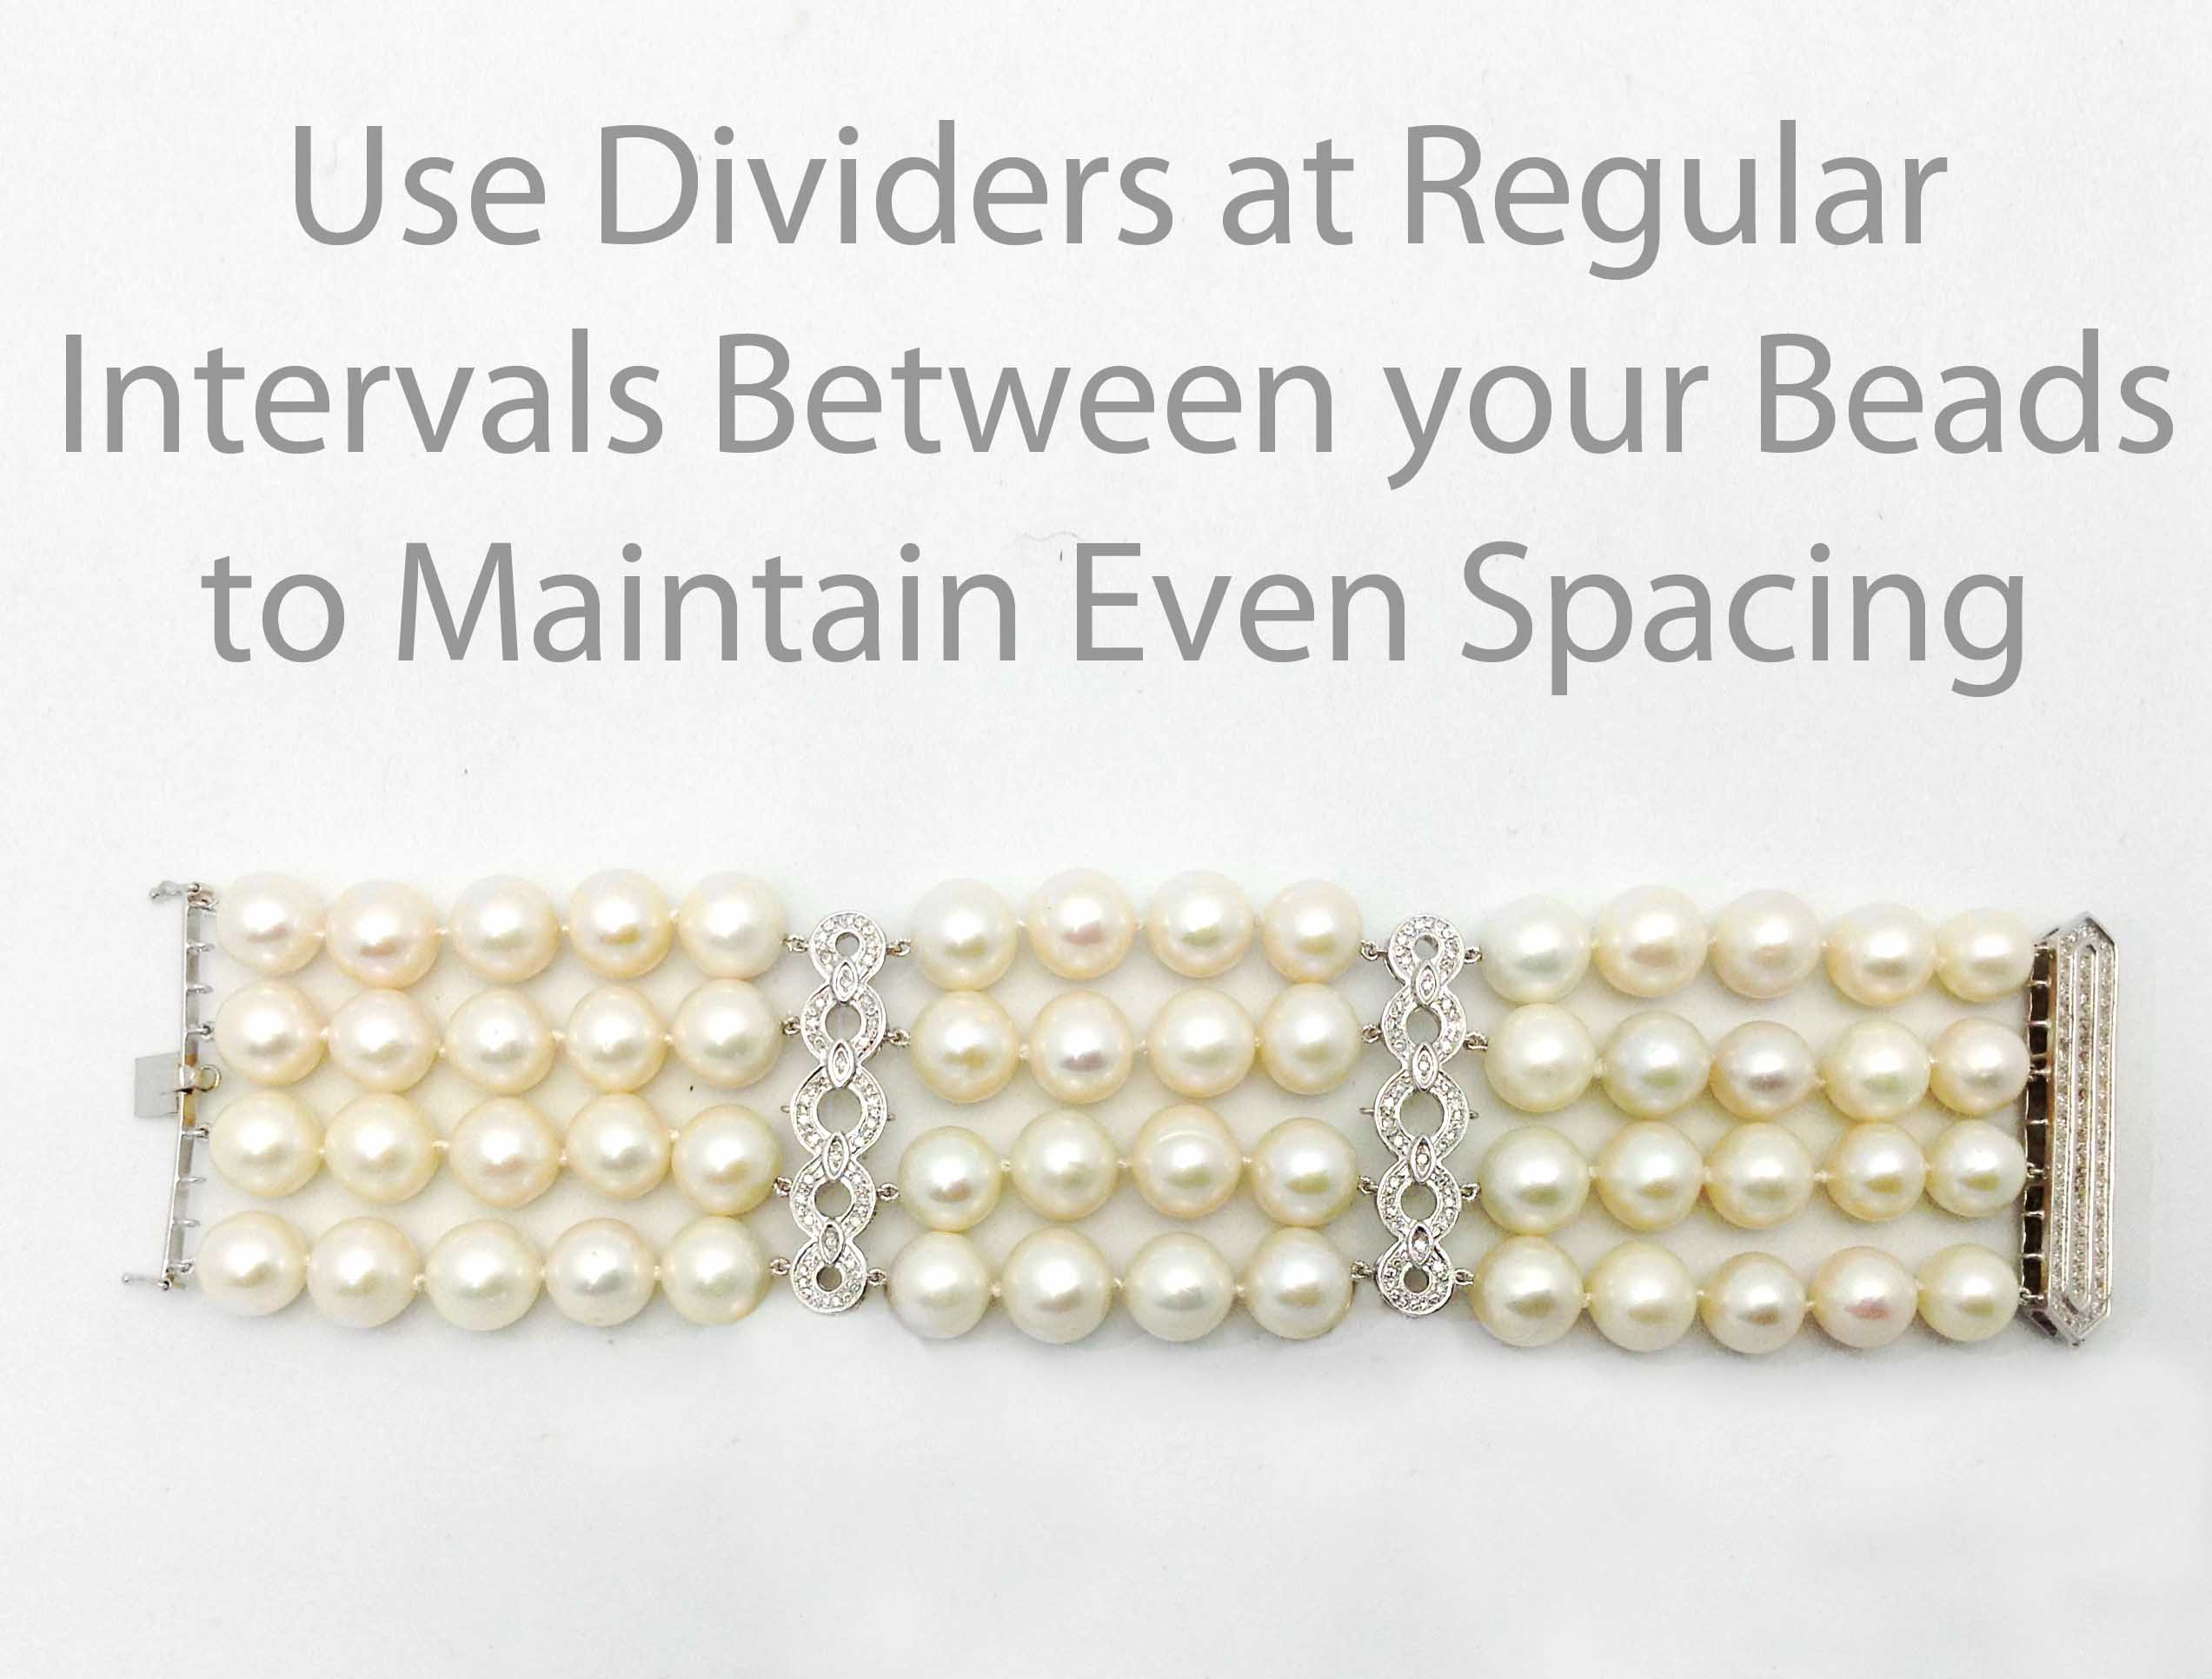 Multi-Strand Dividers to Keep your Bracelet Aligned